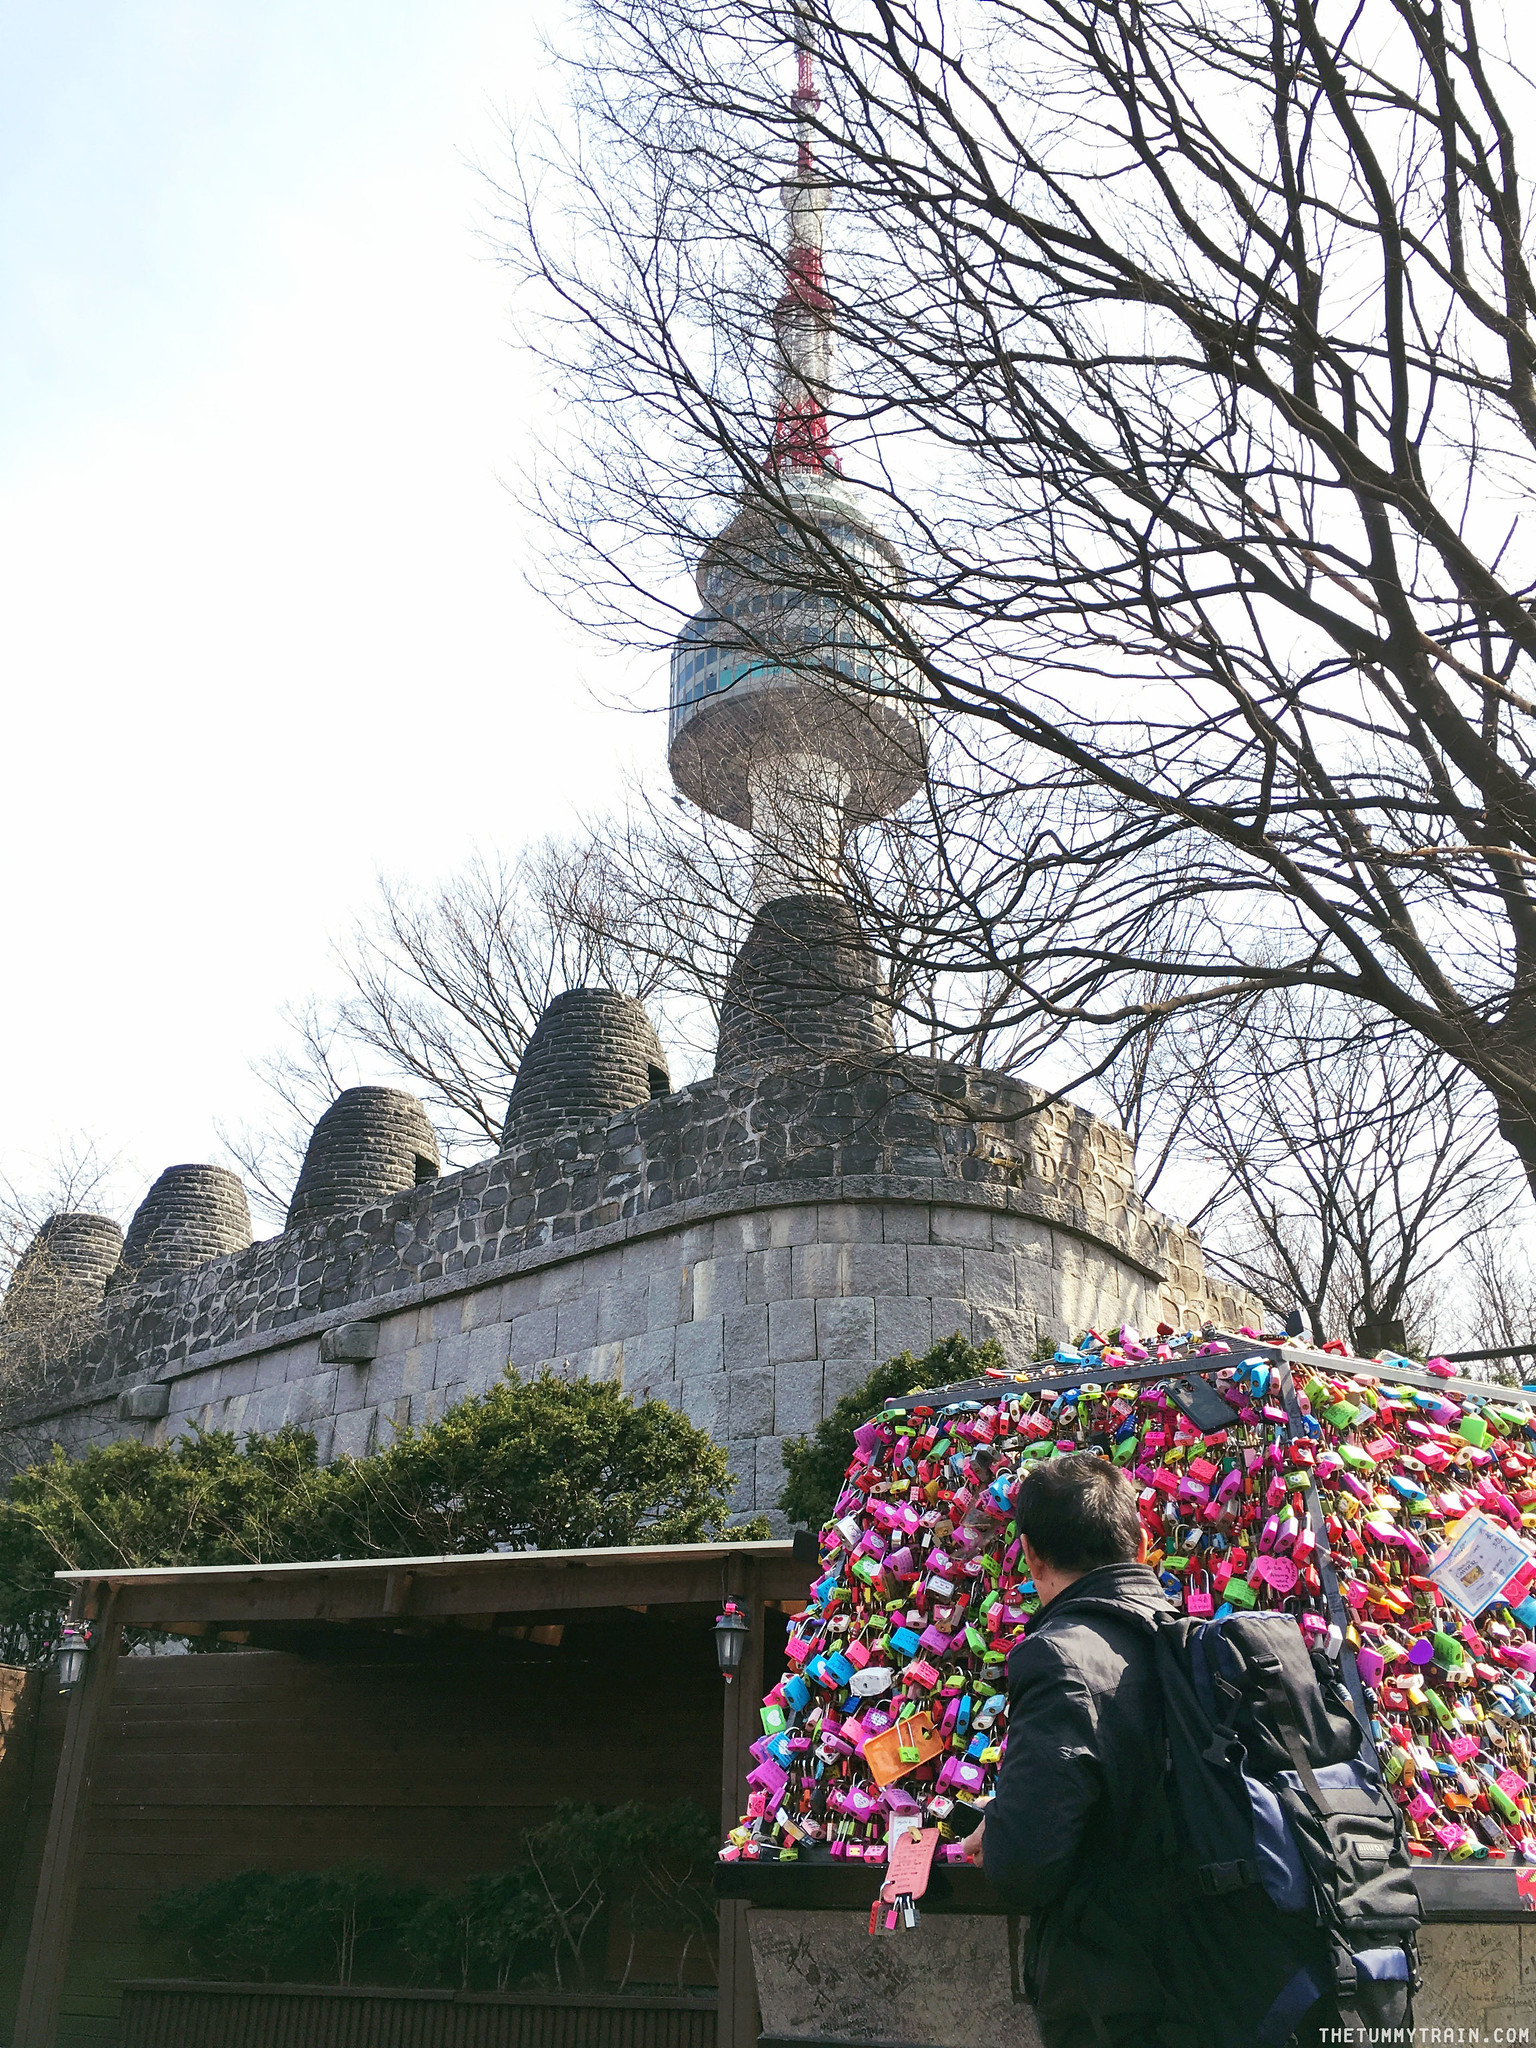 33564045556 b32403ace7 k - Seoul-ful Spring 2016: Playing Lovers in Korea at N Seoul Tower